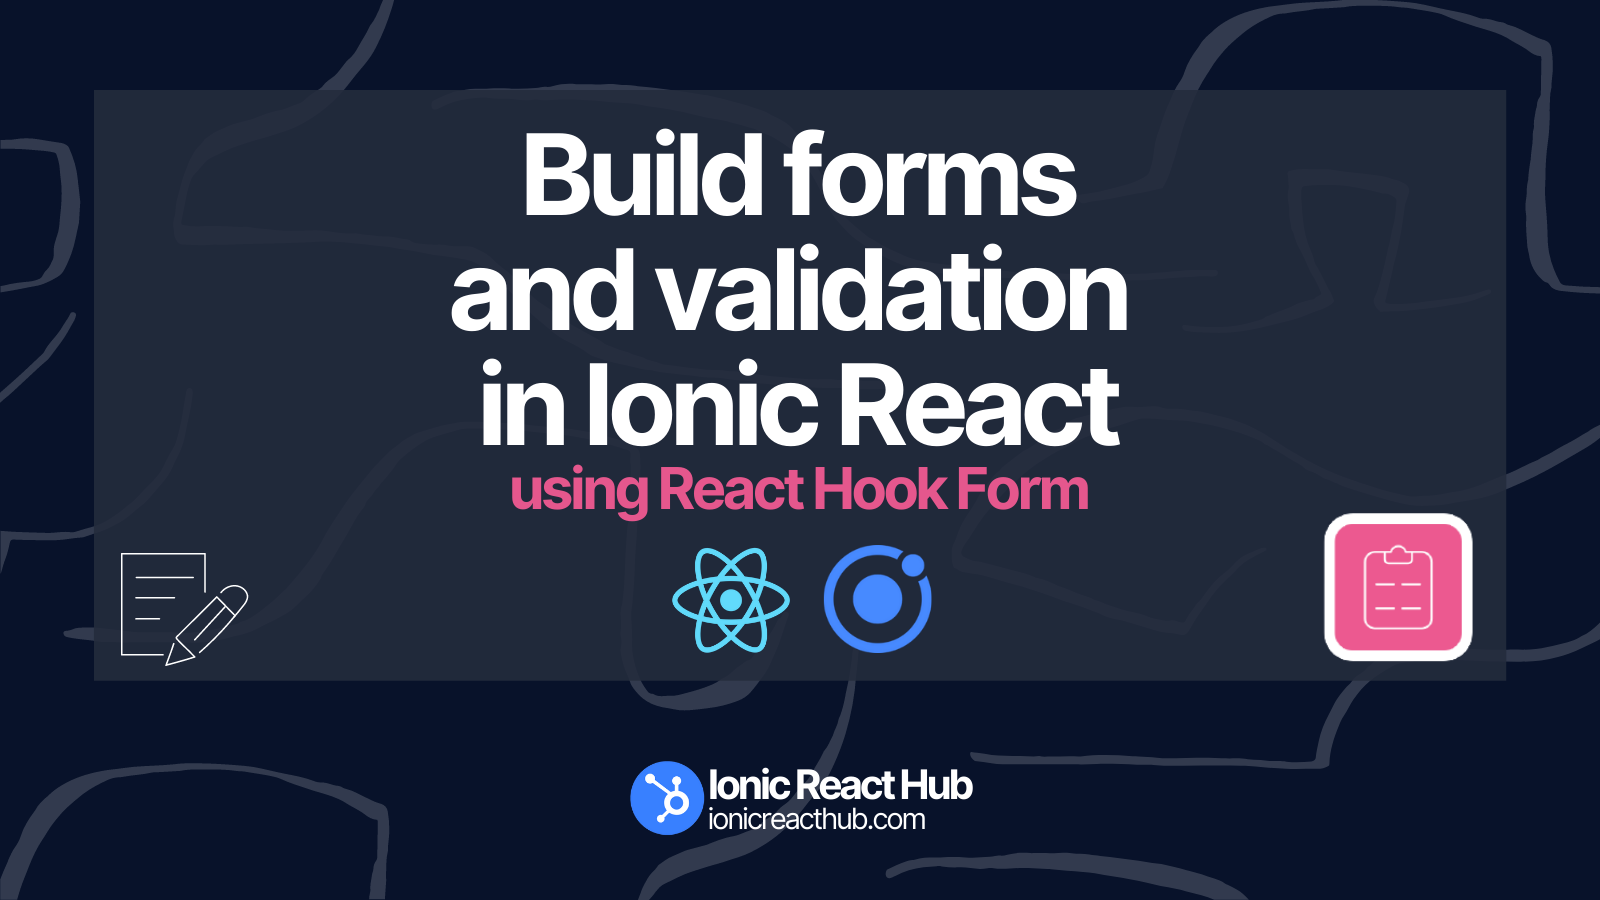 A really easy to use solution for building forms and validation in your Ionic React mobile apps.